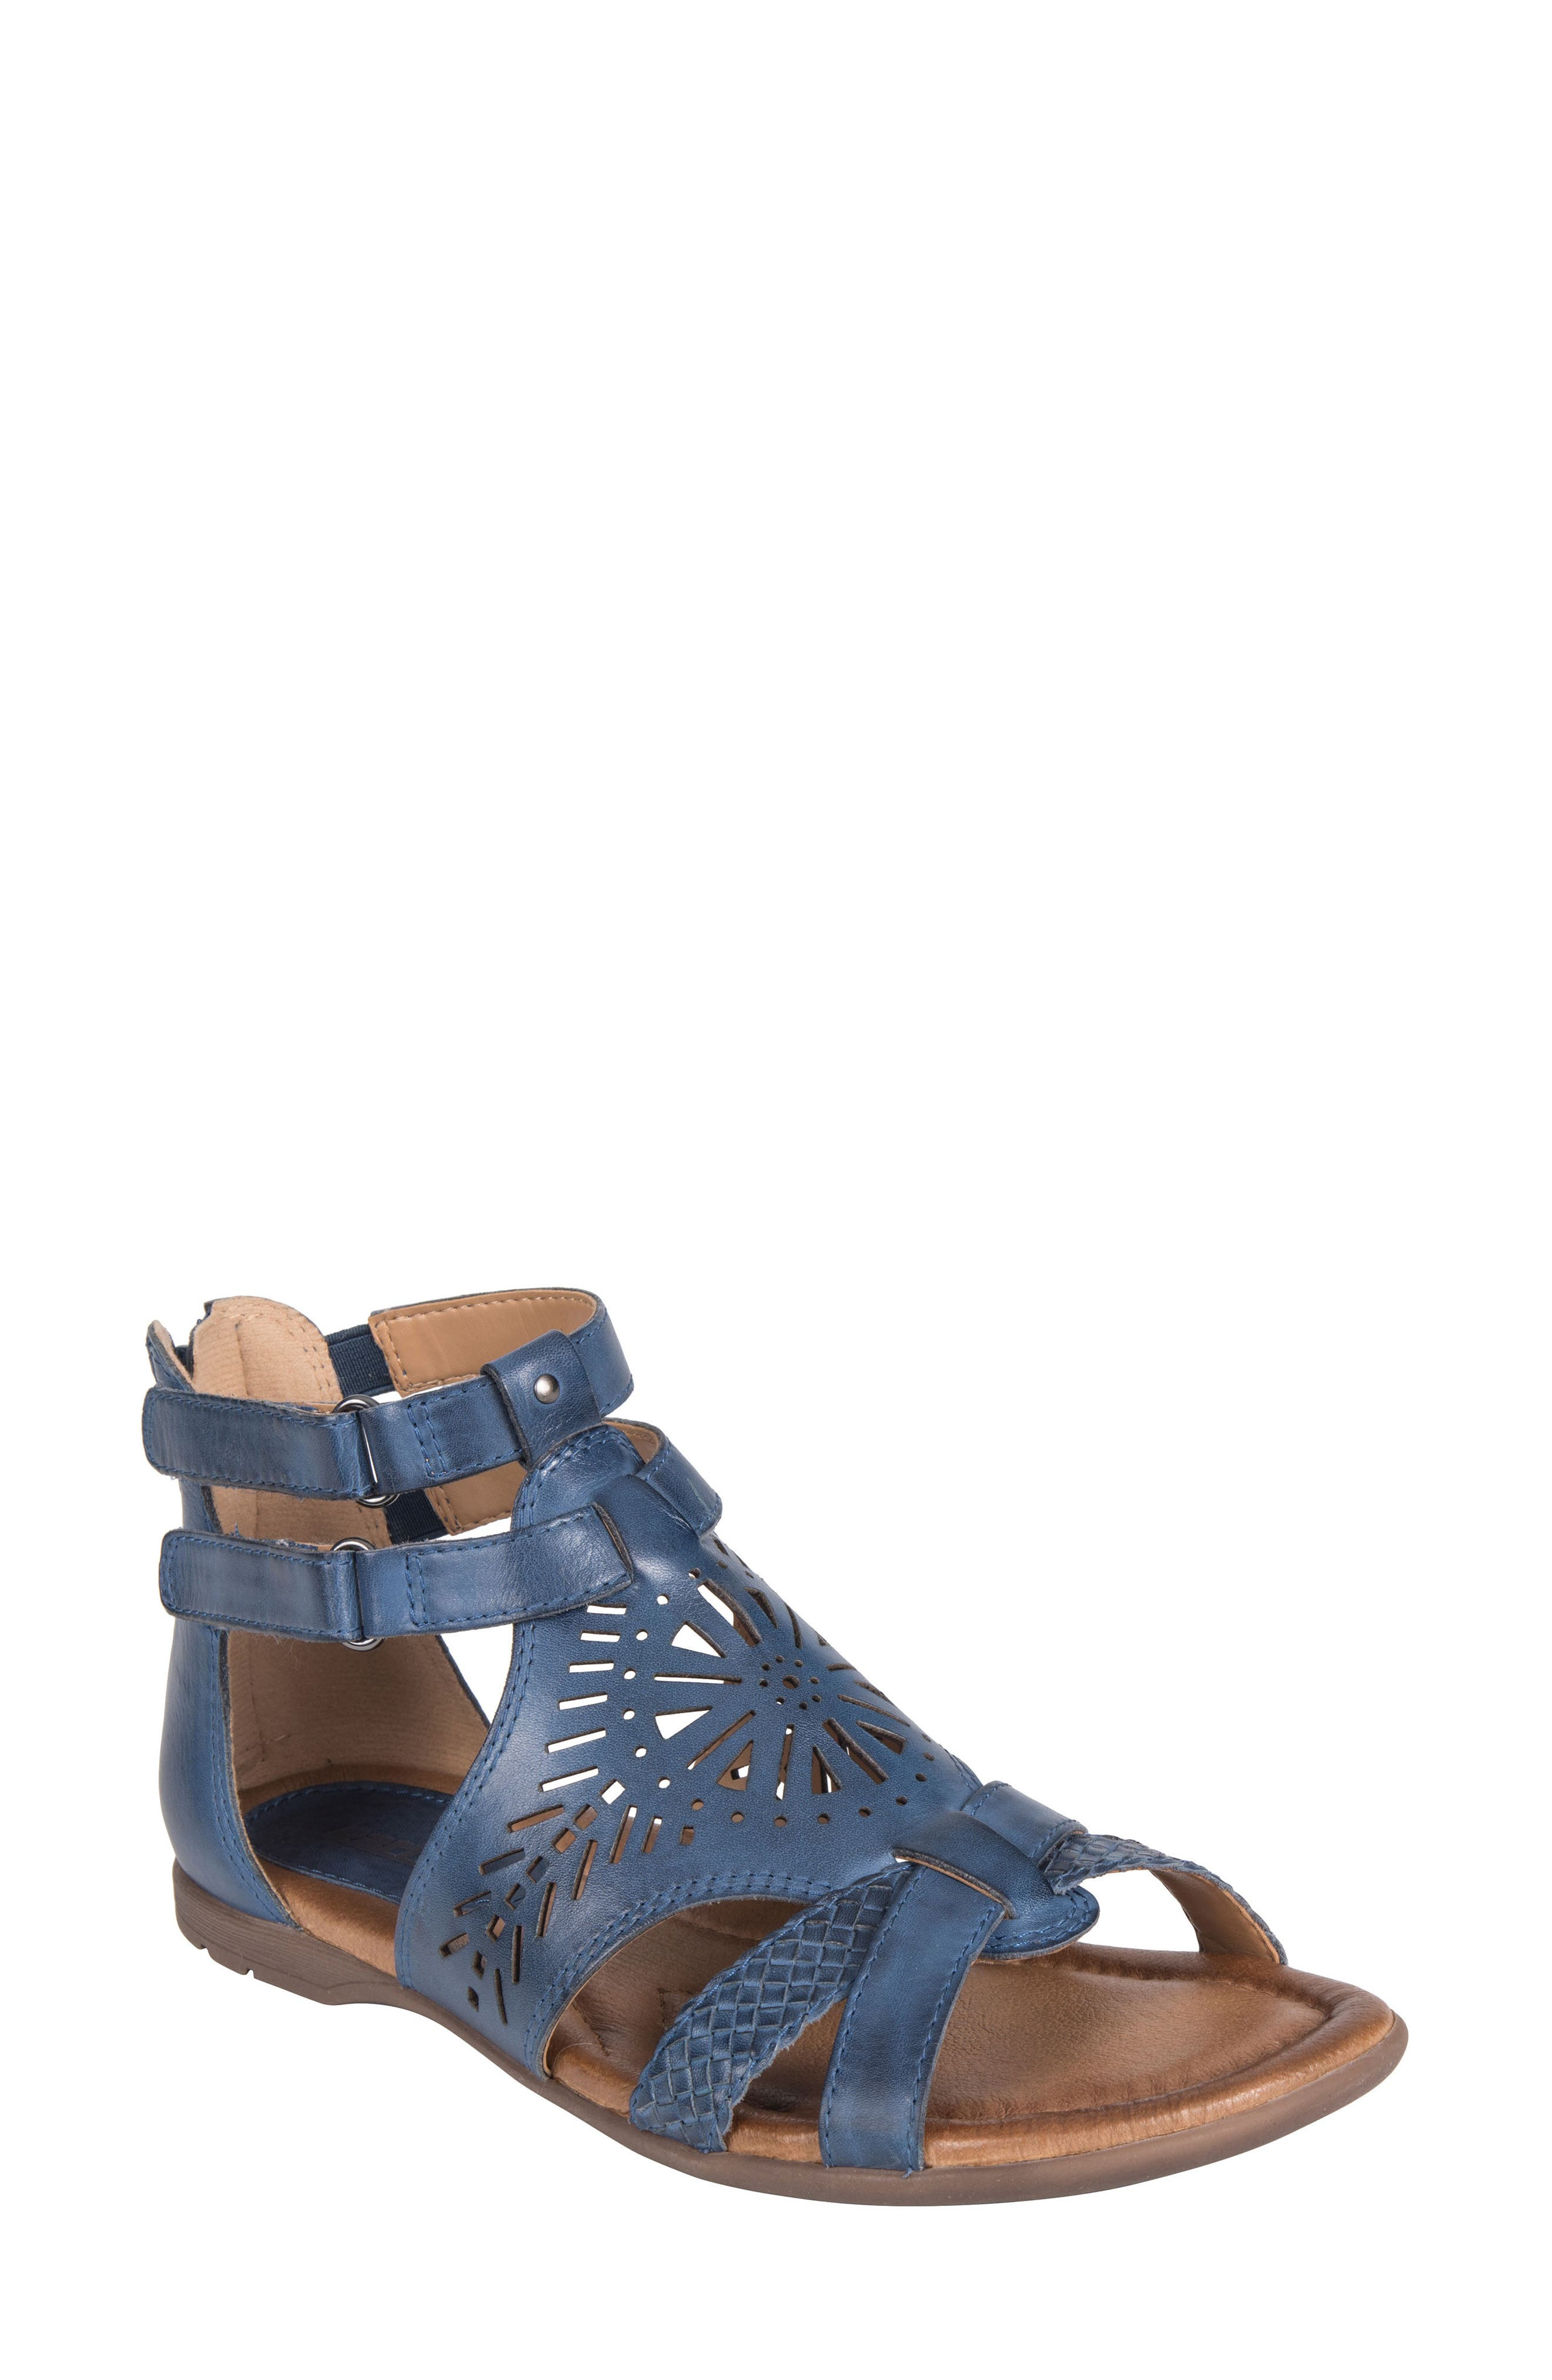 Breaker Sandal,                         Main,                         color, SAPPHIRE BLUE LEATHER